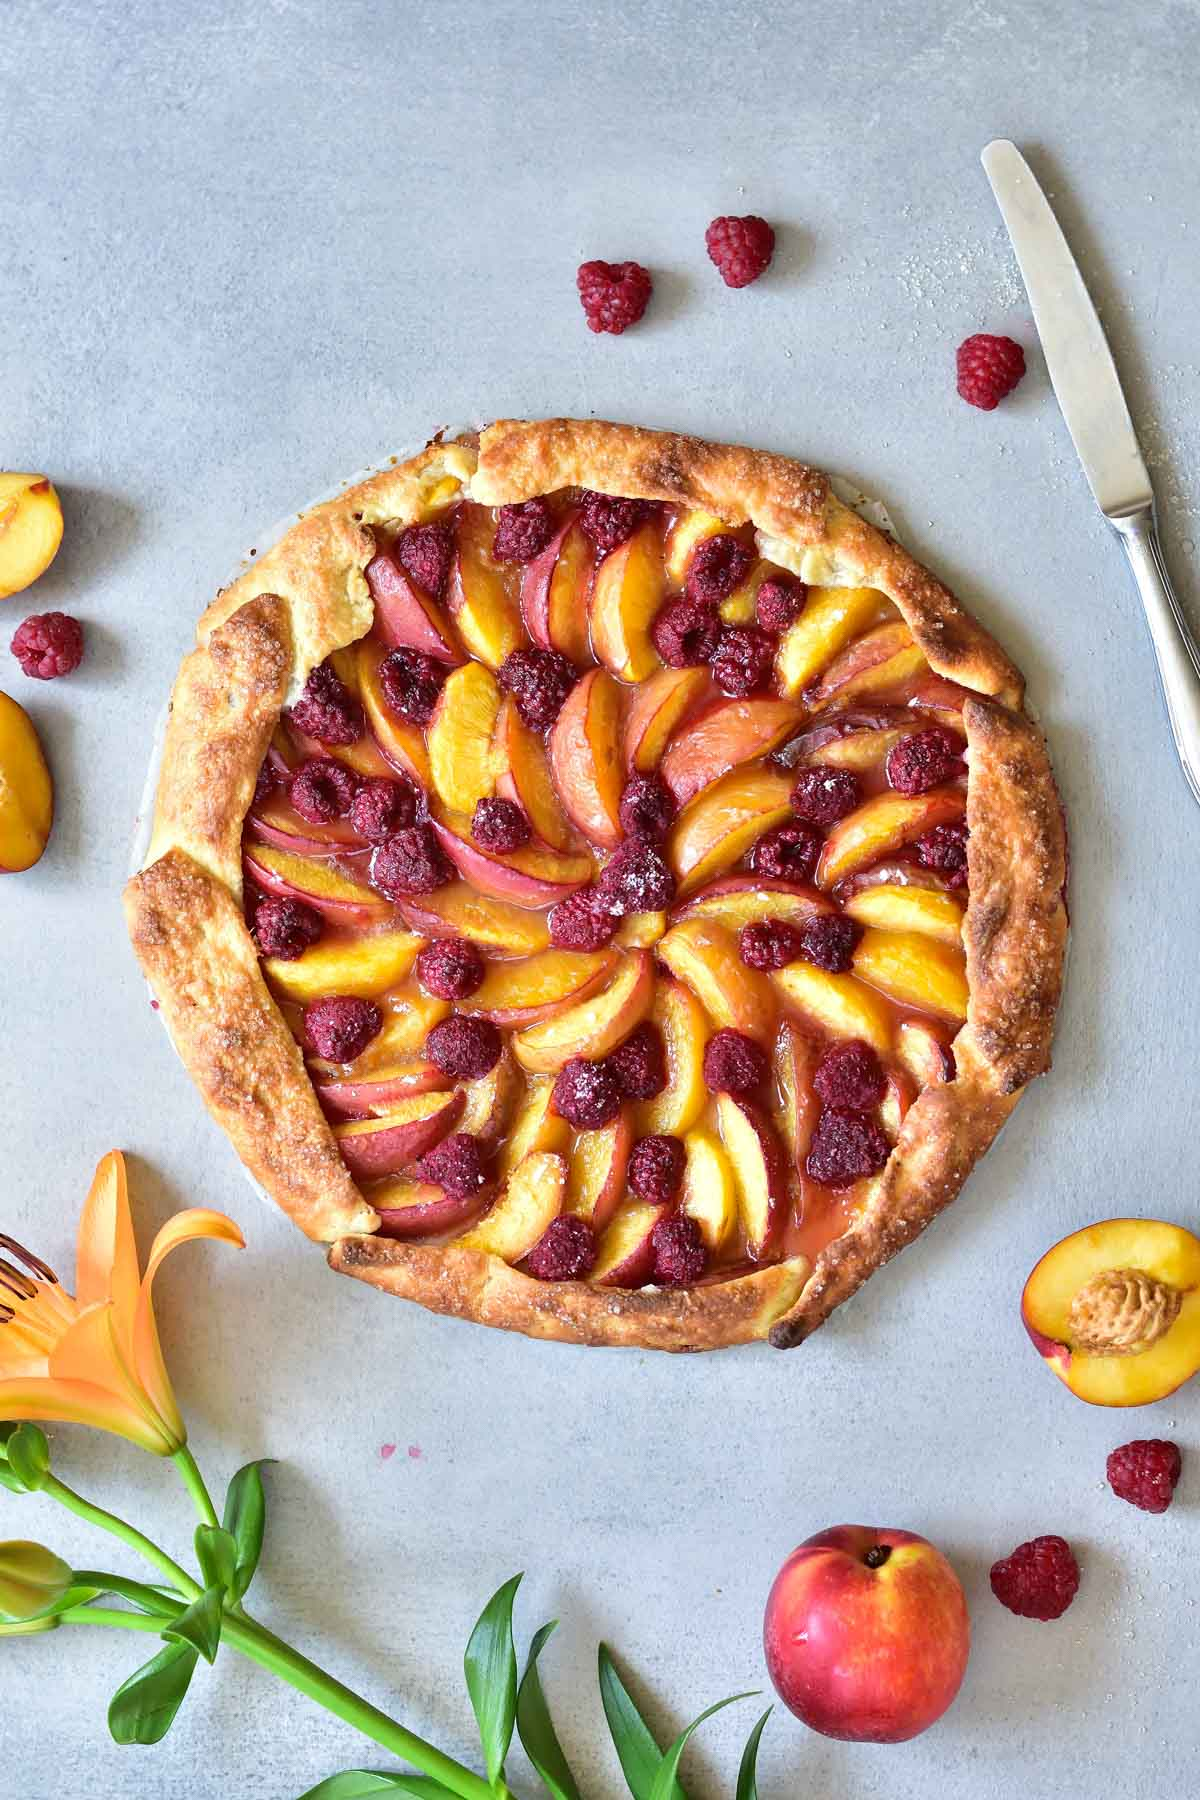 nectarine galette with raspberries on a blue background